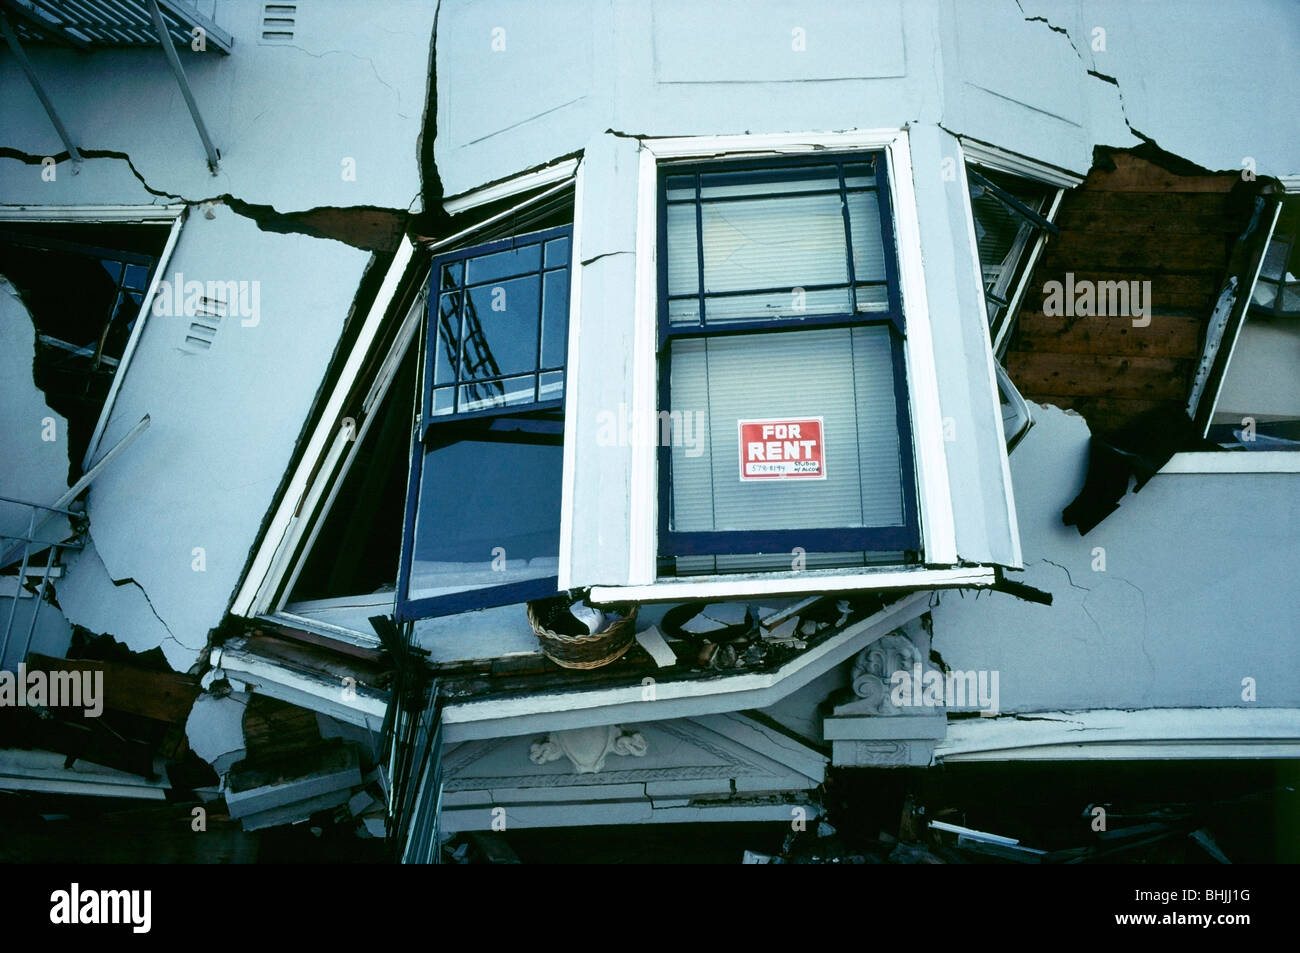 3429dd42 Damaged multistory apartment building in the San Francisco Marina District  after the 1989 Loma Prieta Earthquake